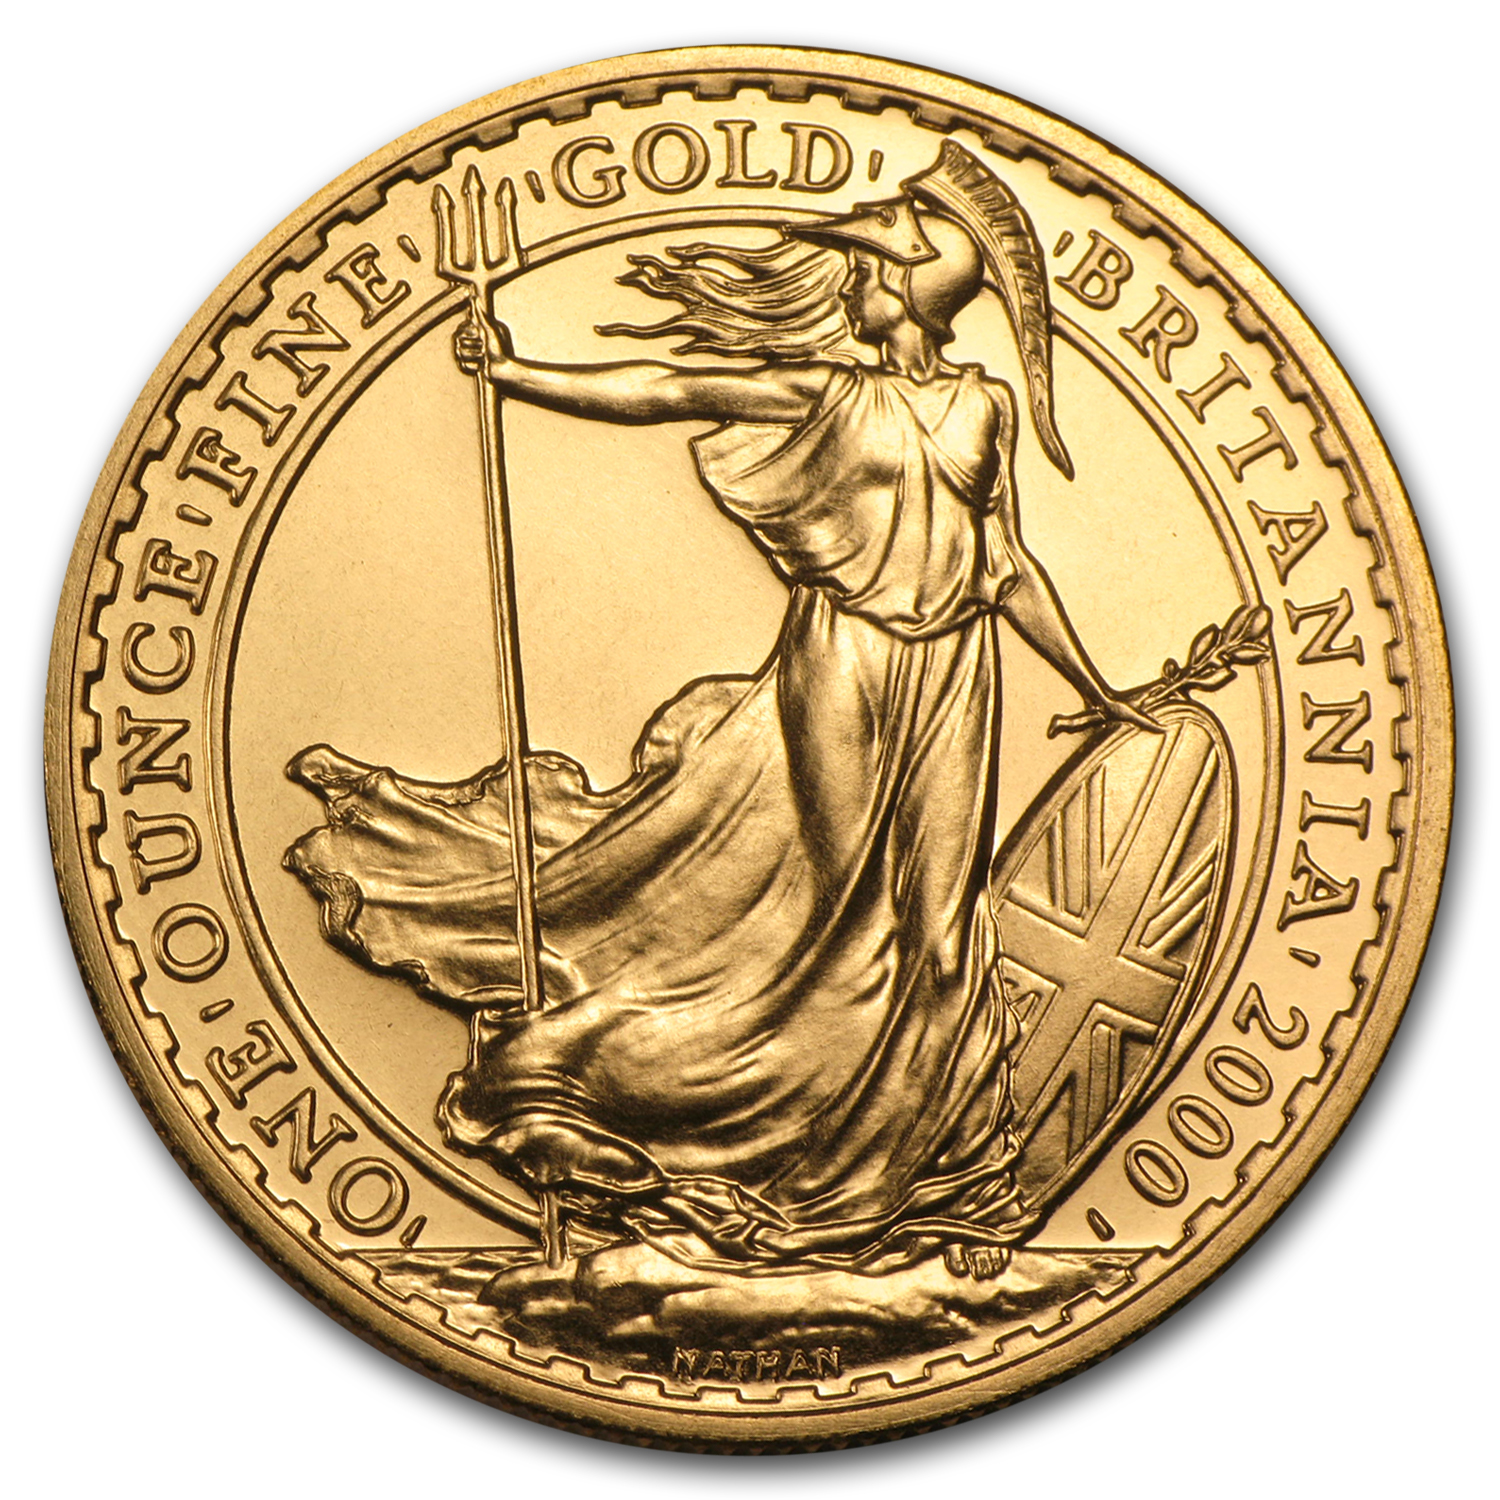 2000 1 oz Gold Britannia - Brilliant Uncirculated